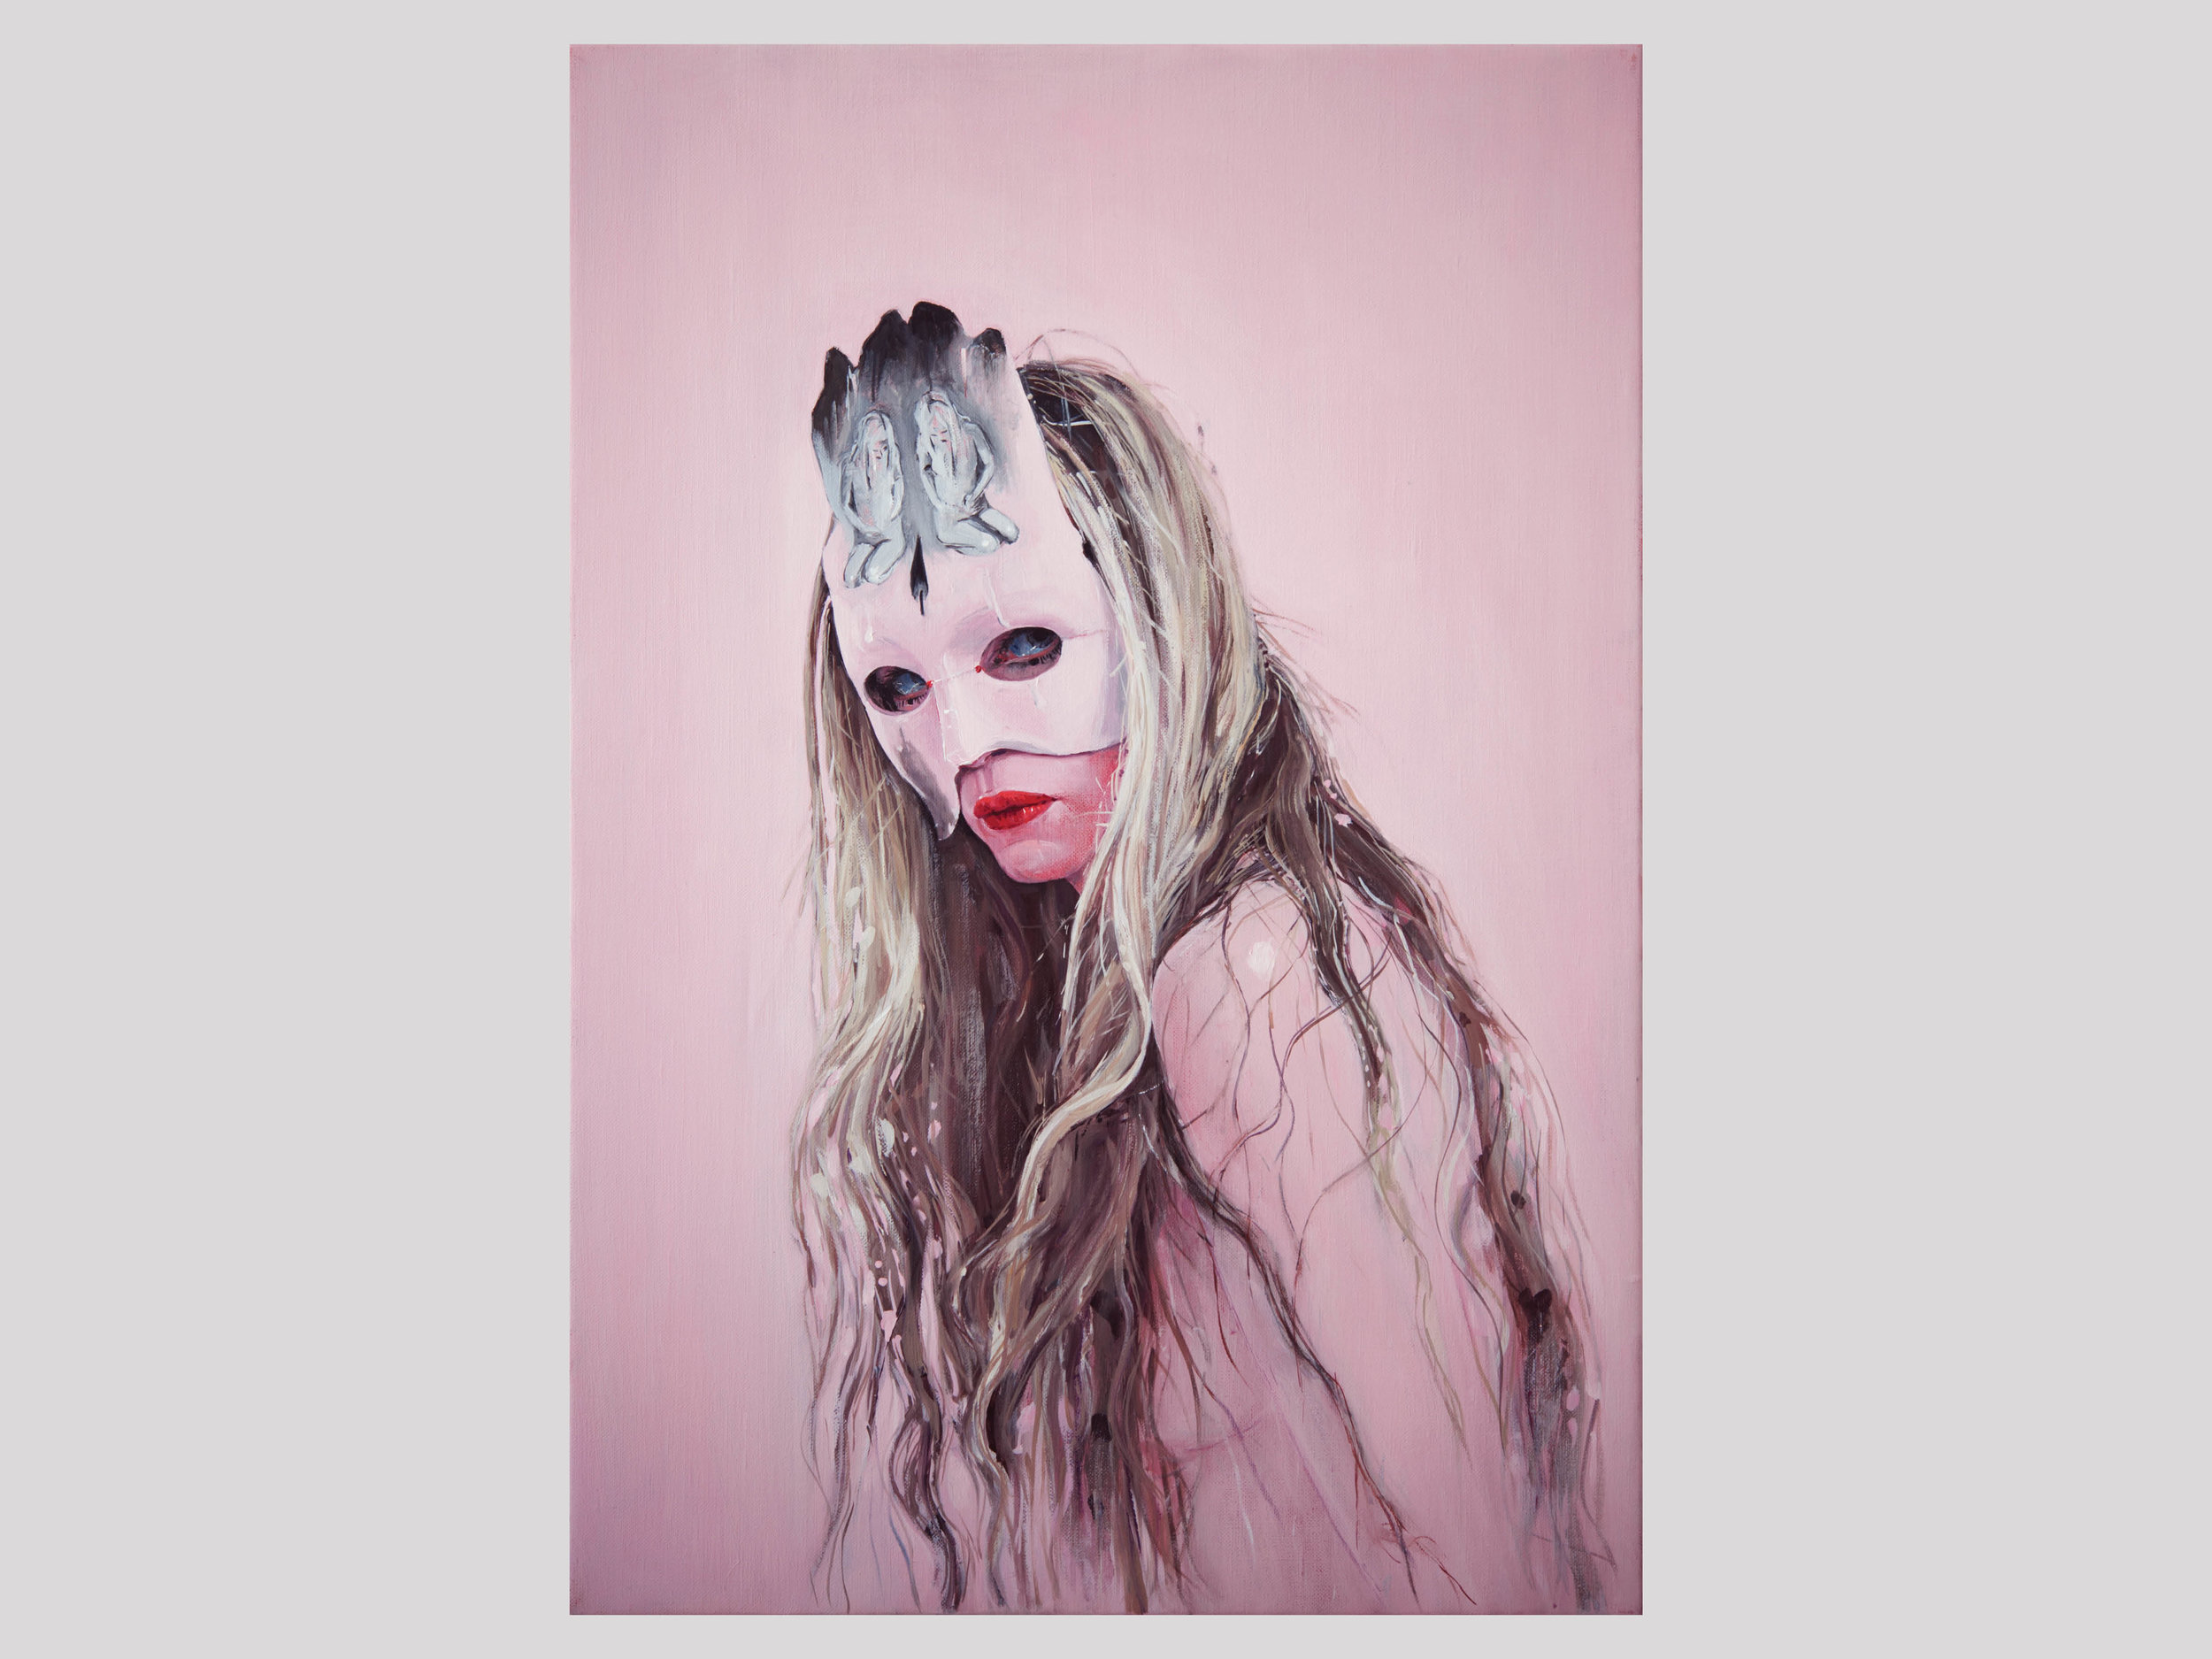 """Ylva Snöfrid   Mask After the Transmutation Ritual (nr.3)  2017 Oil on canvas 63 x 43 cm  """"This work wasn't in our show, but originates from the artist's studio in Athens a year ago. There, she lived with her family in a symbiosis with her art and with her alter ego, Snöfrid who eventually melted in to Ylva in the CFHILL exhibition. This self portrait shakes me. It's simply brilliant and shows that she's reached a new level in her painting.""""   Available"""